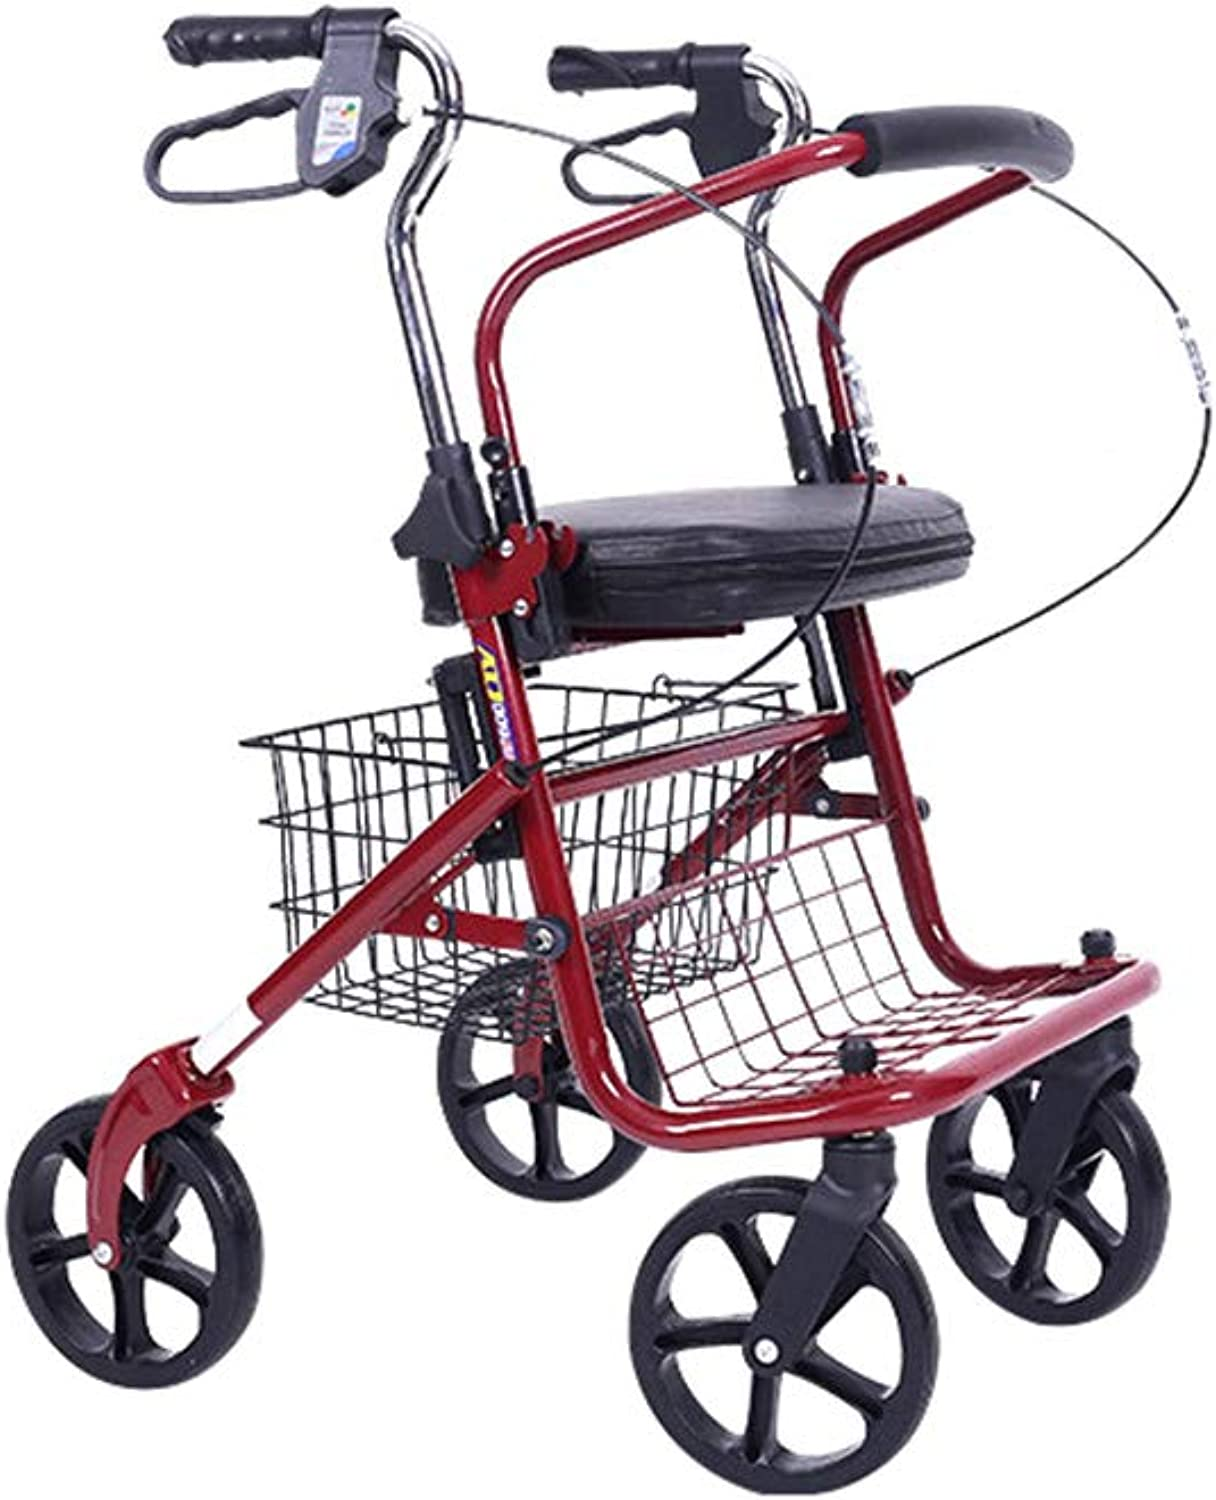 Lightweight Folding Four Wheel Rollator Walker with Padded Seat, Lockable Brakes, Ergonomic Handles,Unisex,Silver